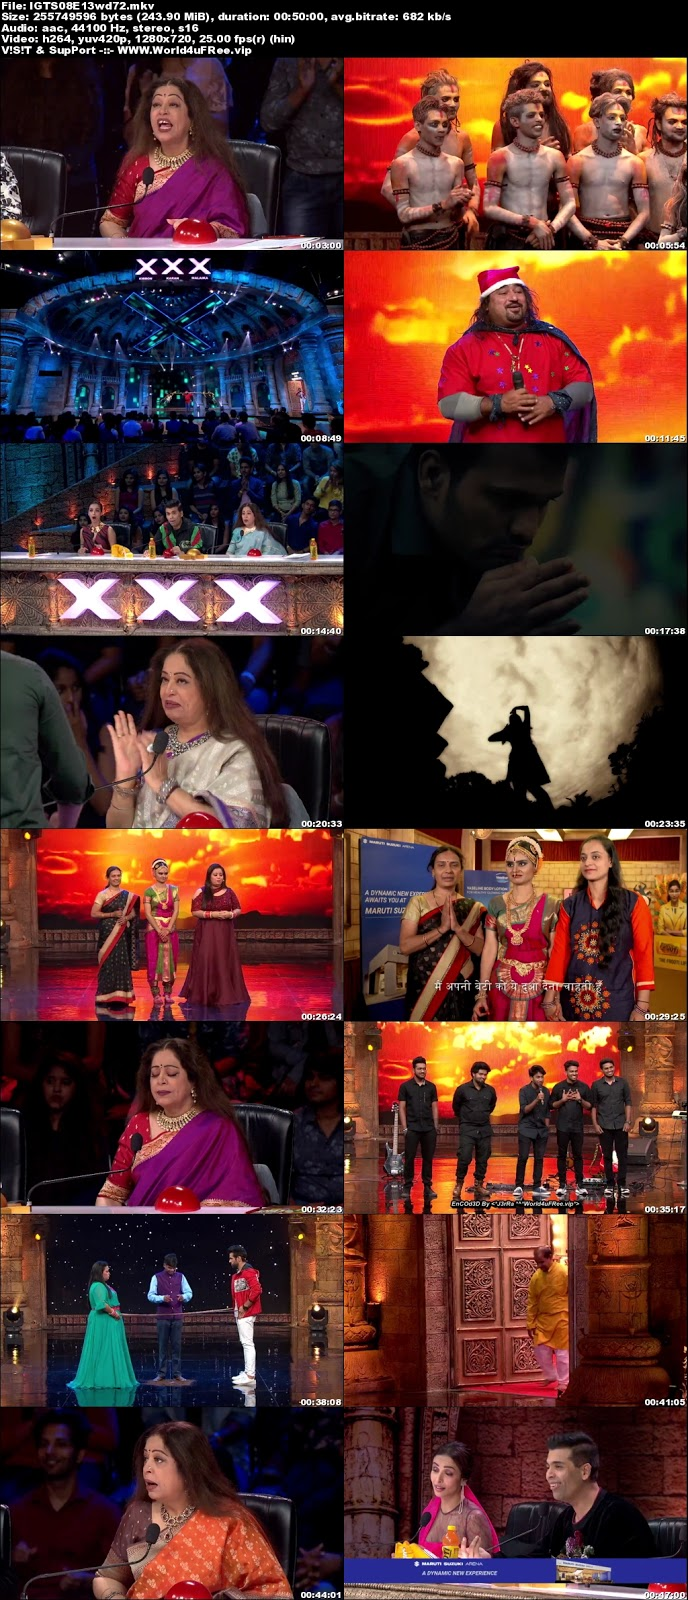 India's Got Talent S08 Episode 13 720p WEBRip 250mb x264 world4ufree.vip tv show India's Got Talent  Season 8 Star Plus tv show HD 720p free download or watch online at world4ufree.vip